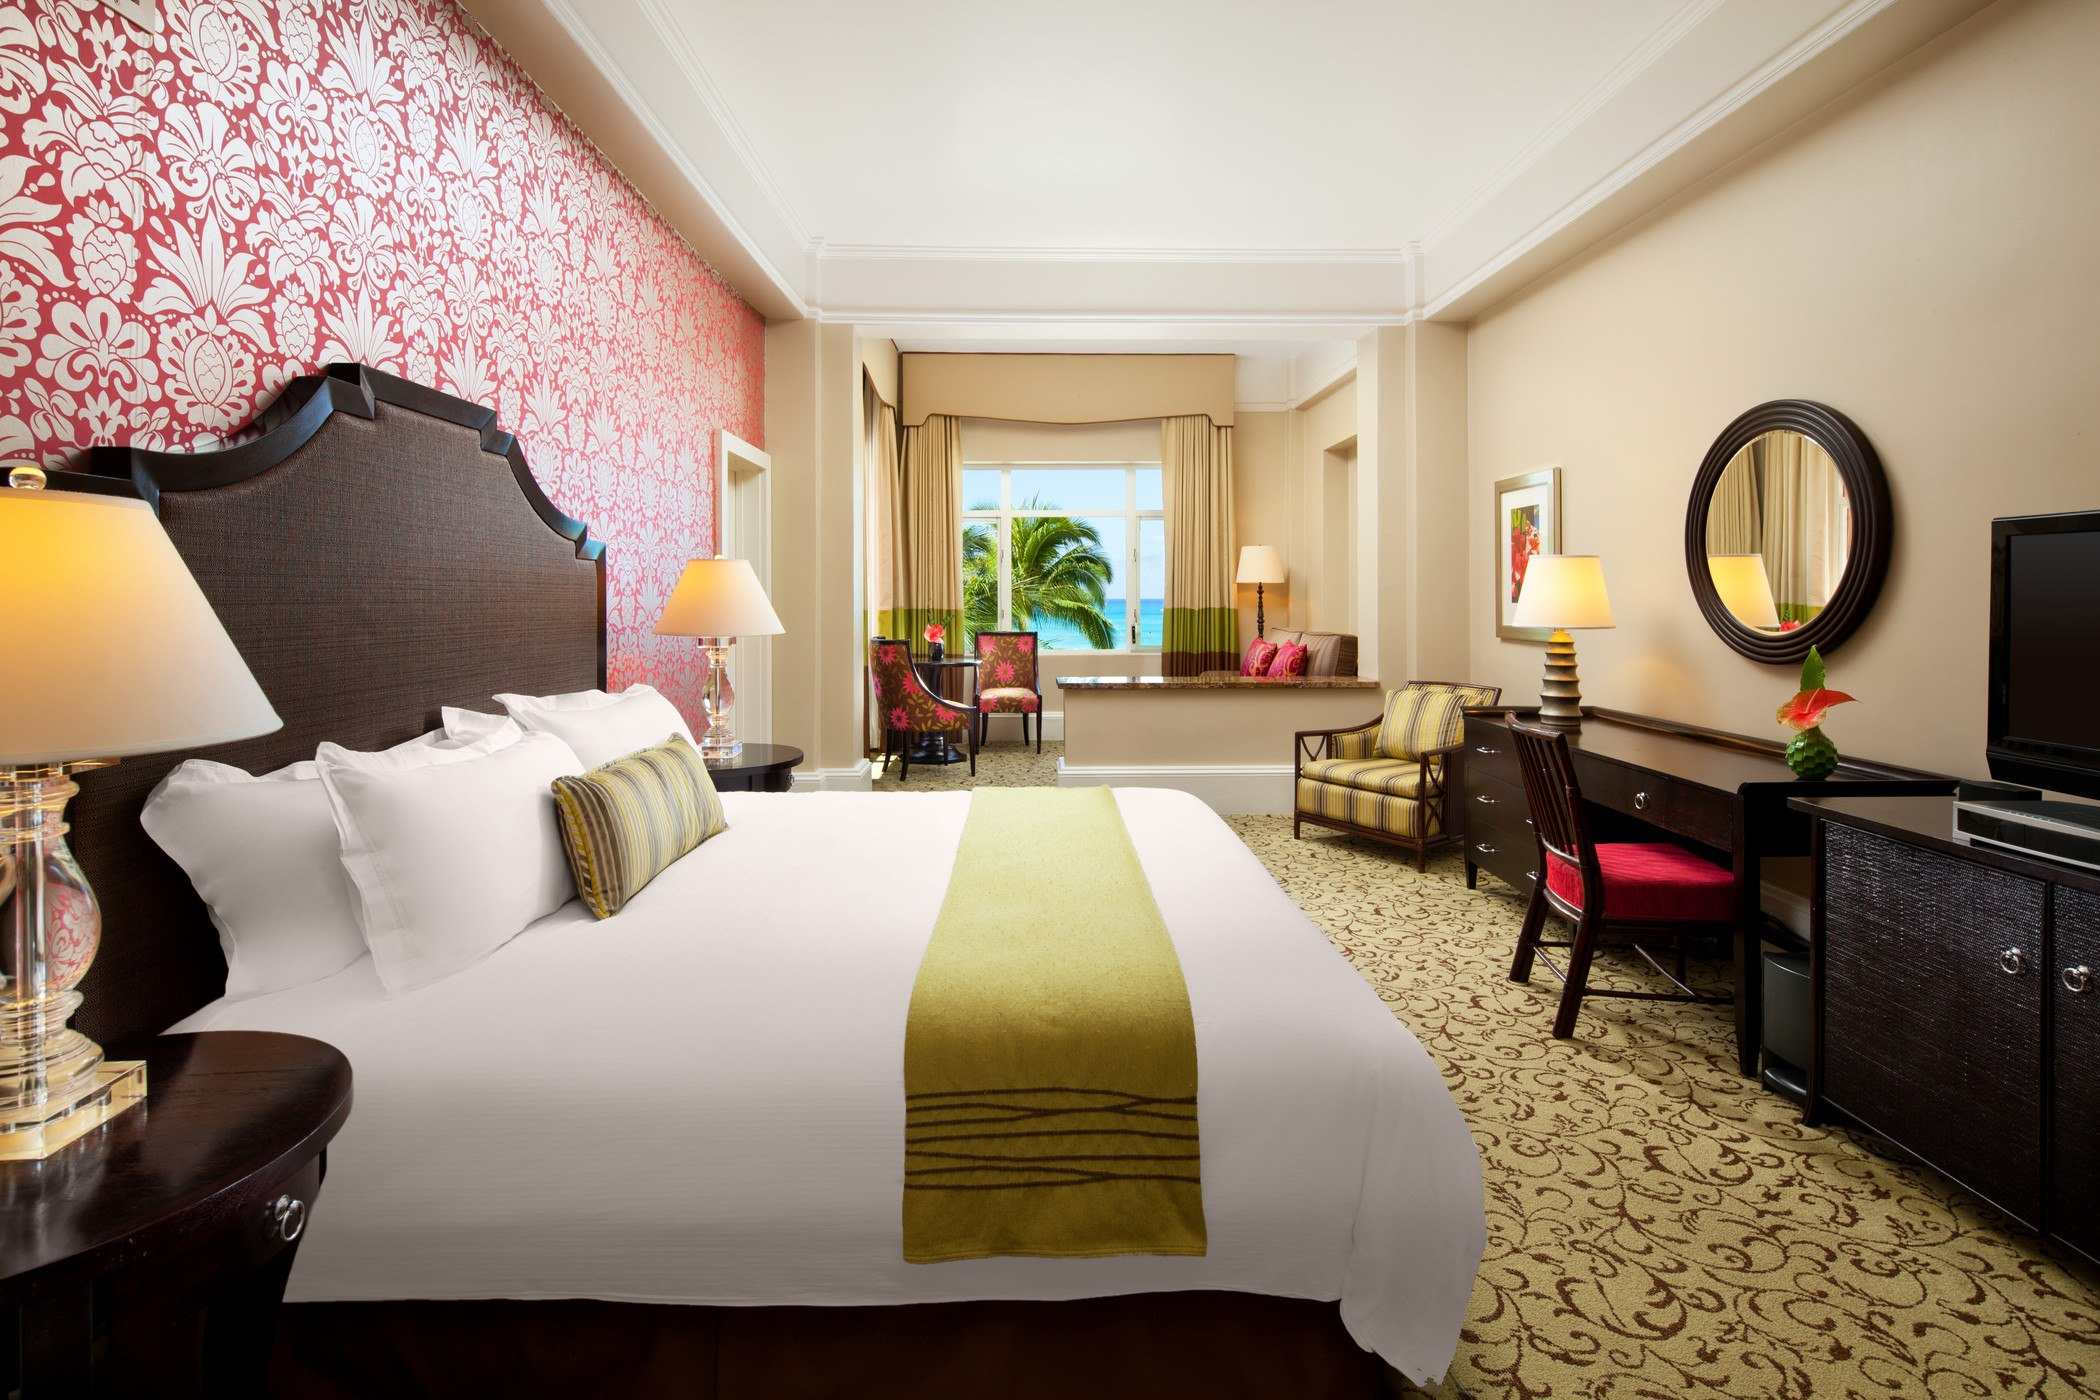 large modern luxury hotel room with king bed, pink and white flowered wallpaper, and ocean view window